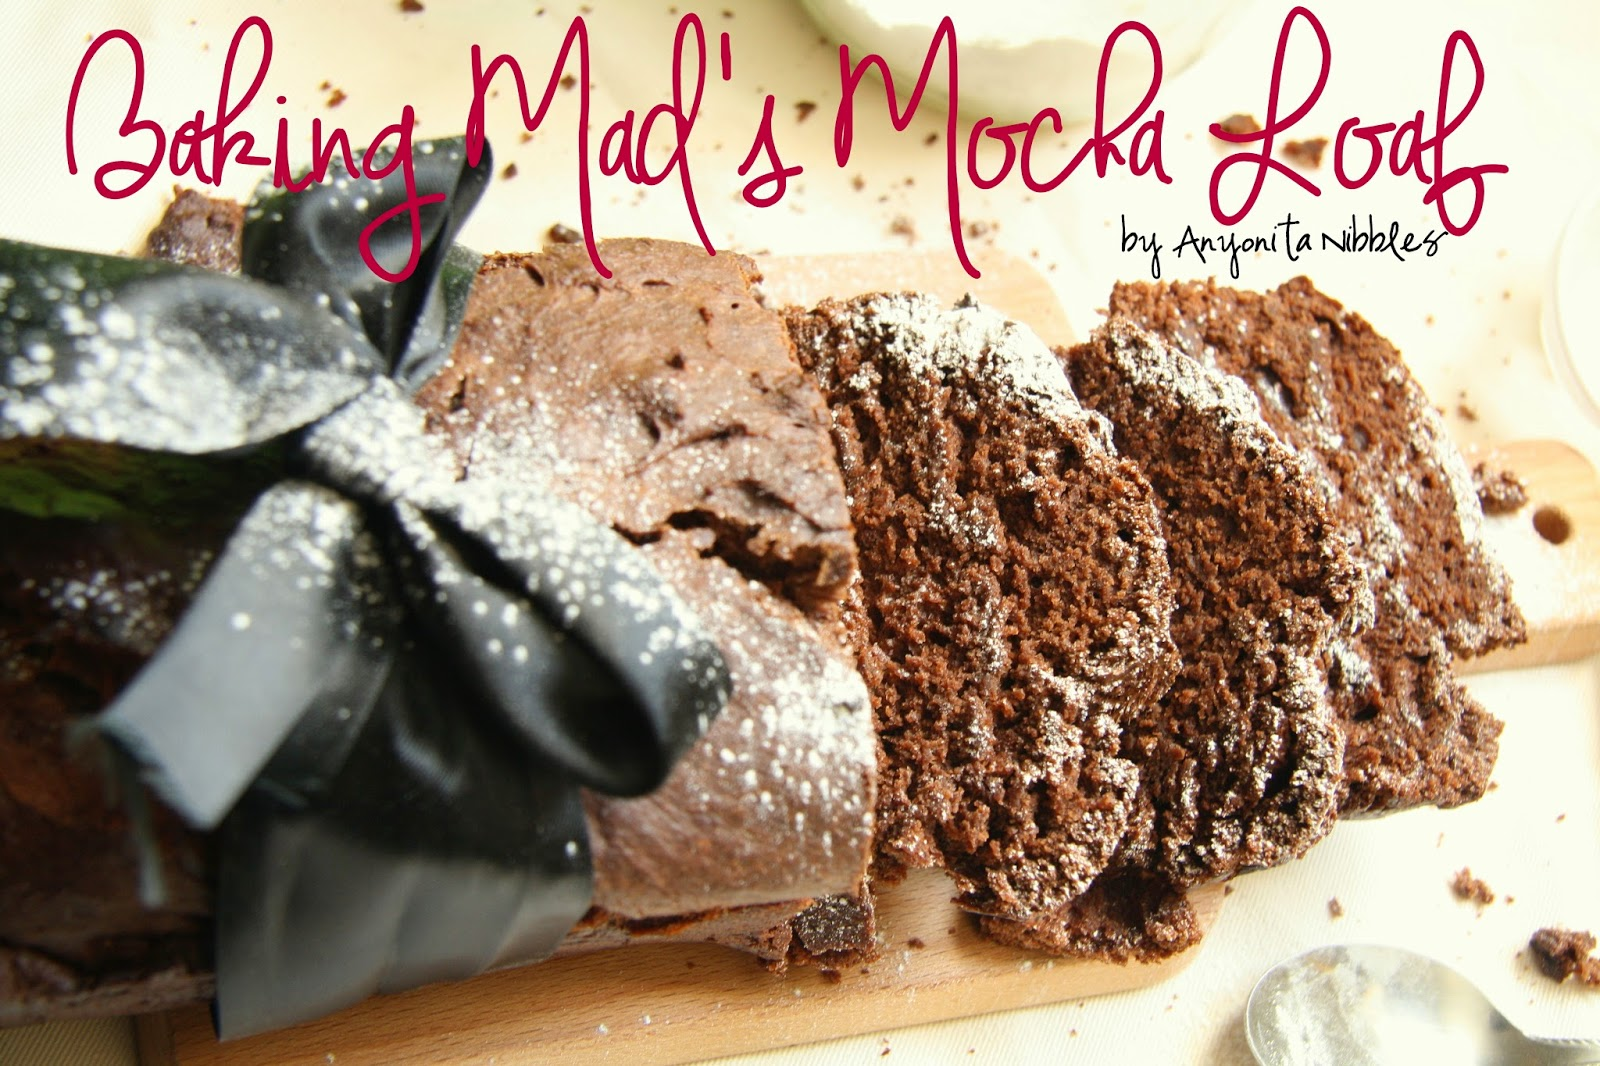 Baking Mad's Mocha Loaf from Anyonita Nibbles